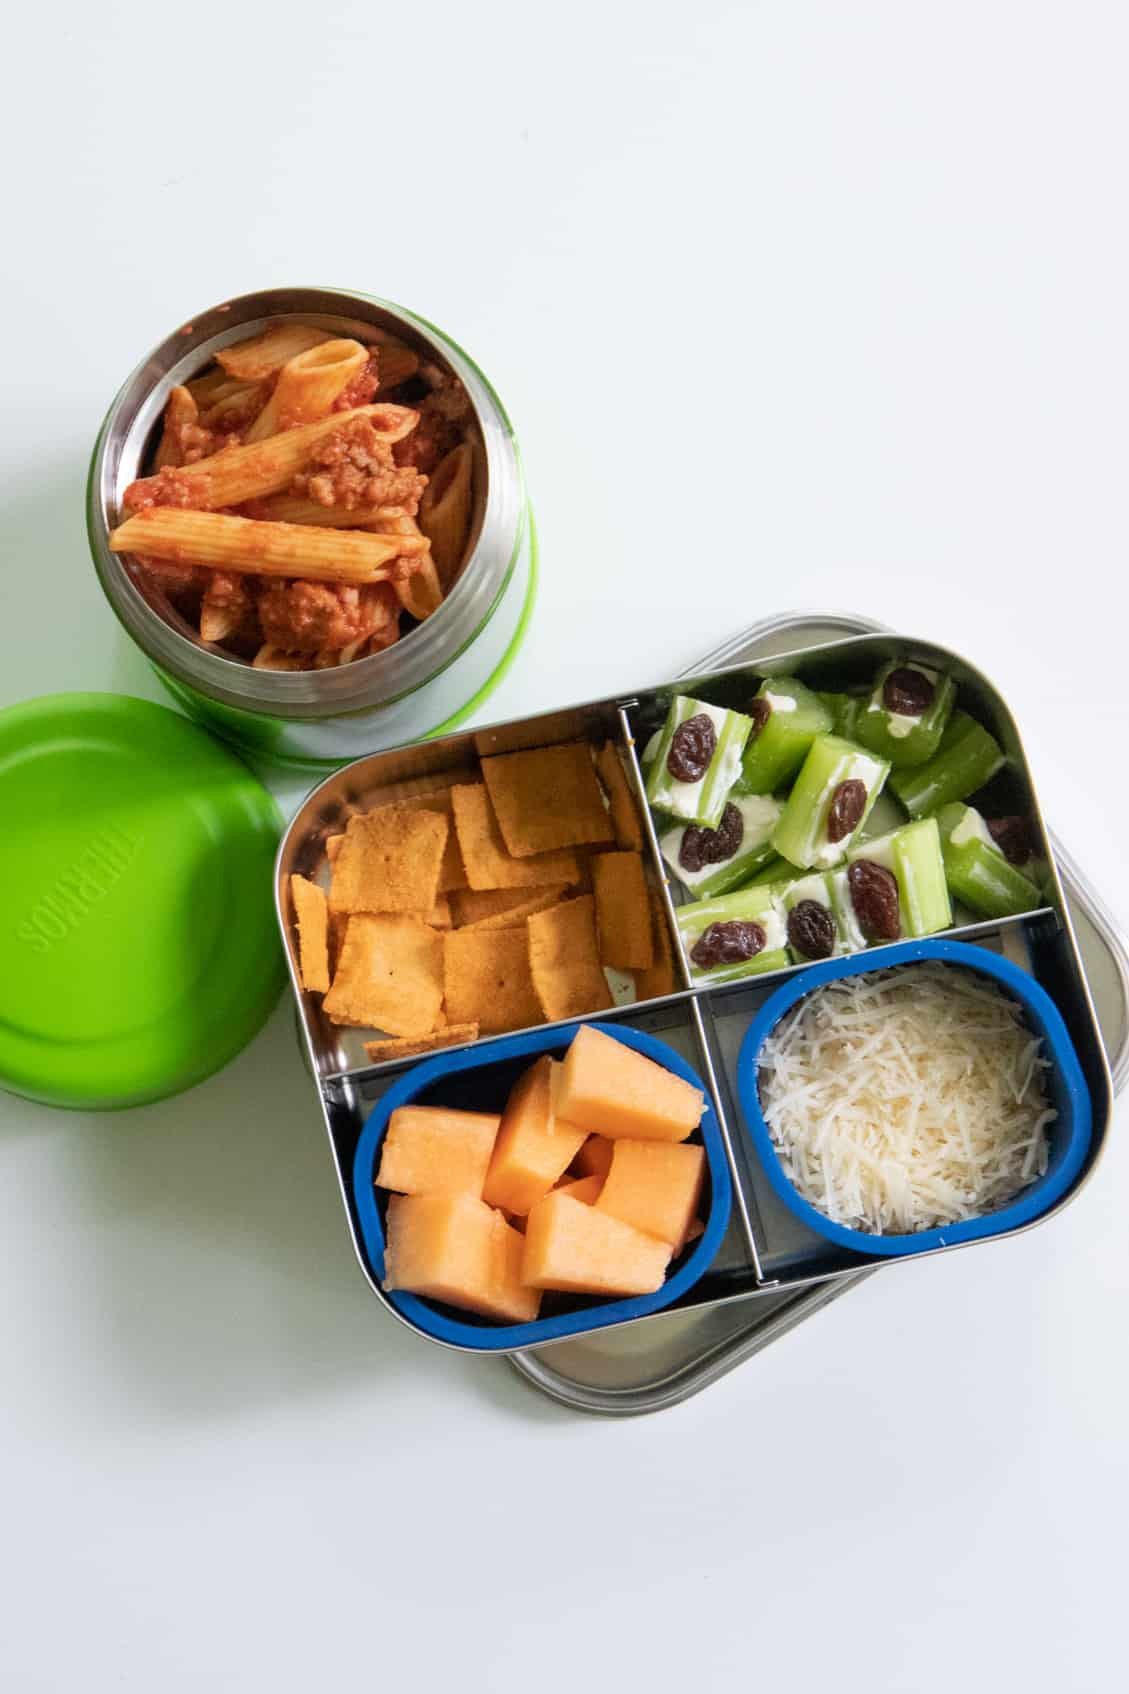 Stainless steel lunch box with cantaloupe, ants on a log, and crackers next to a Thermos of penne in meat sauce.